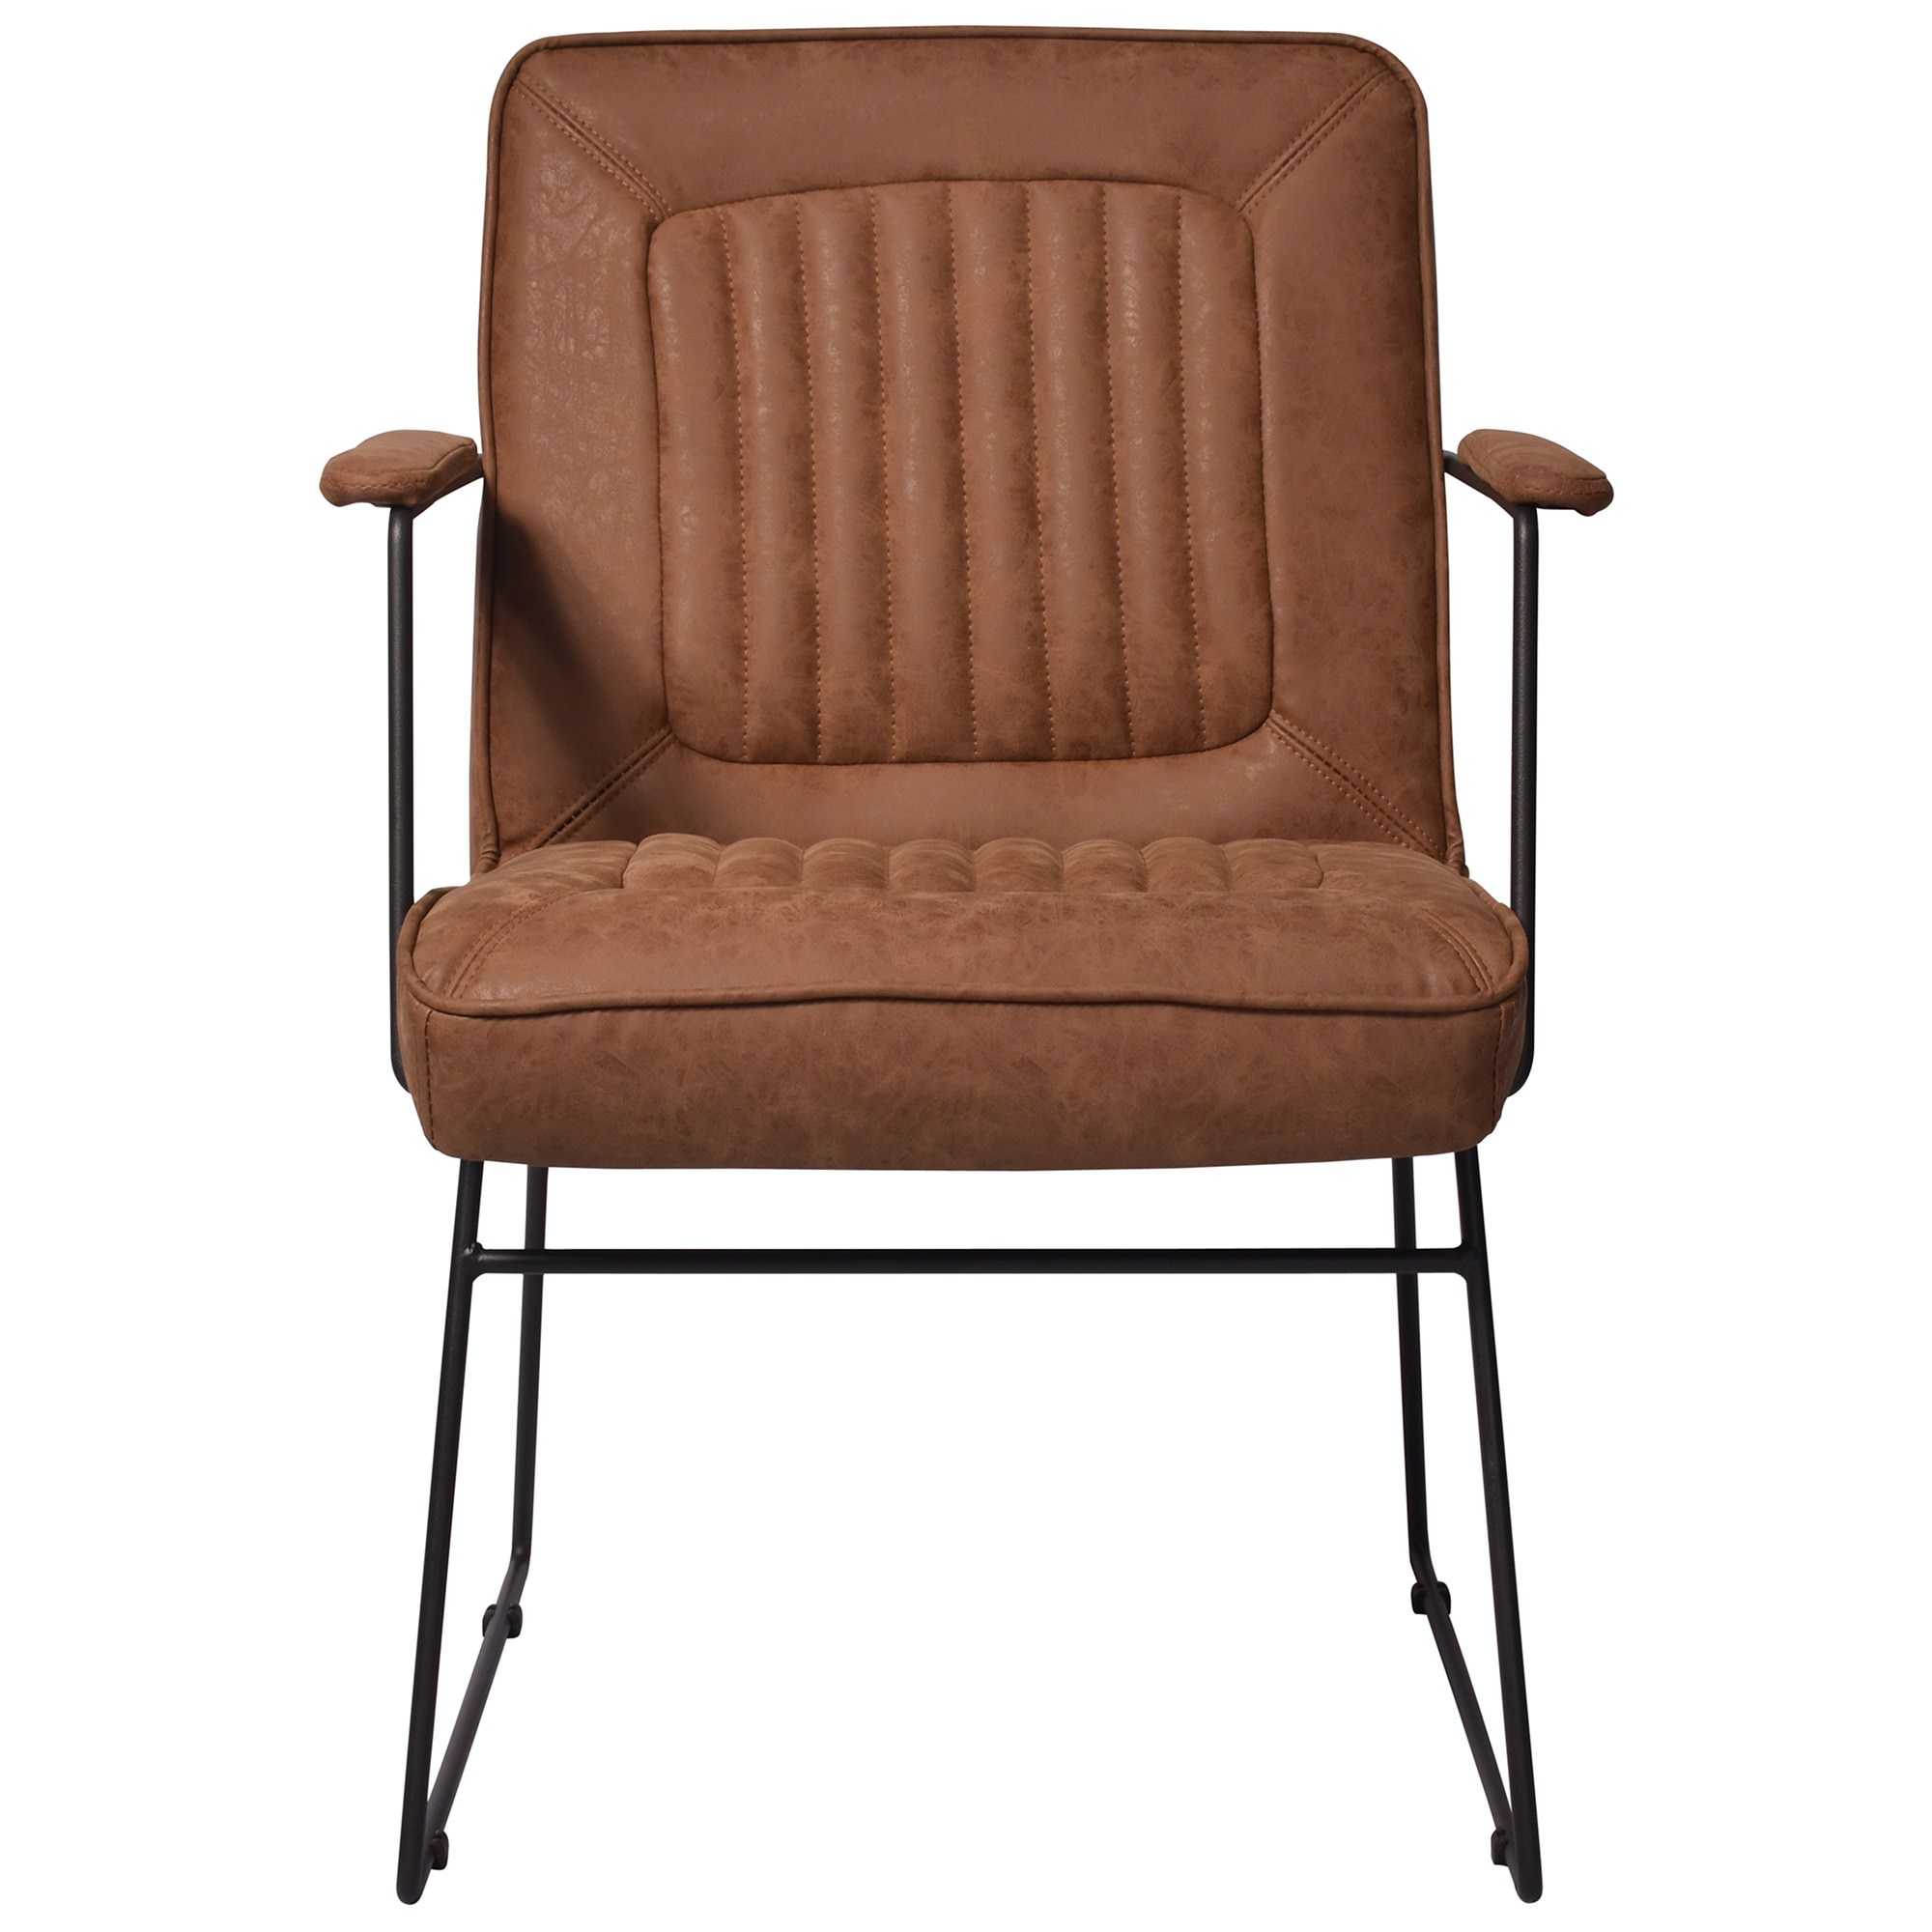 Trewint PU Leather & Metal Armchair, Caramel